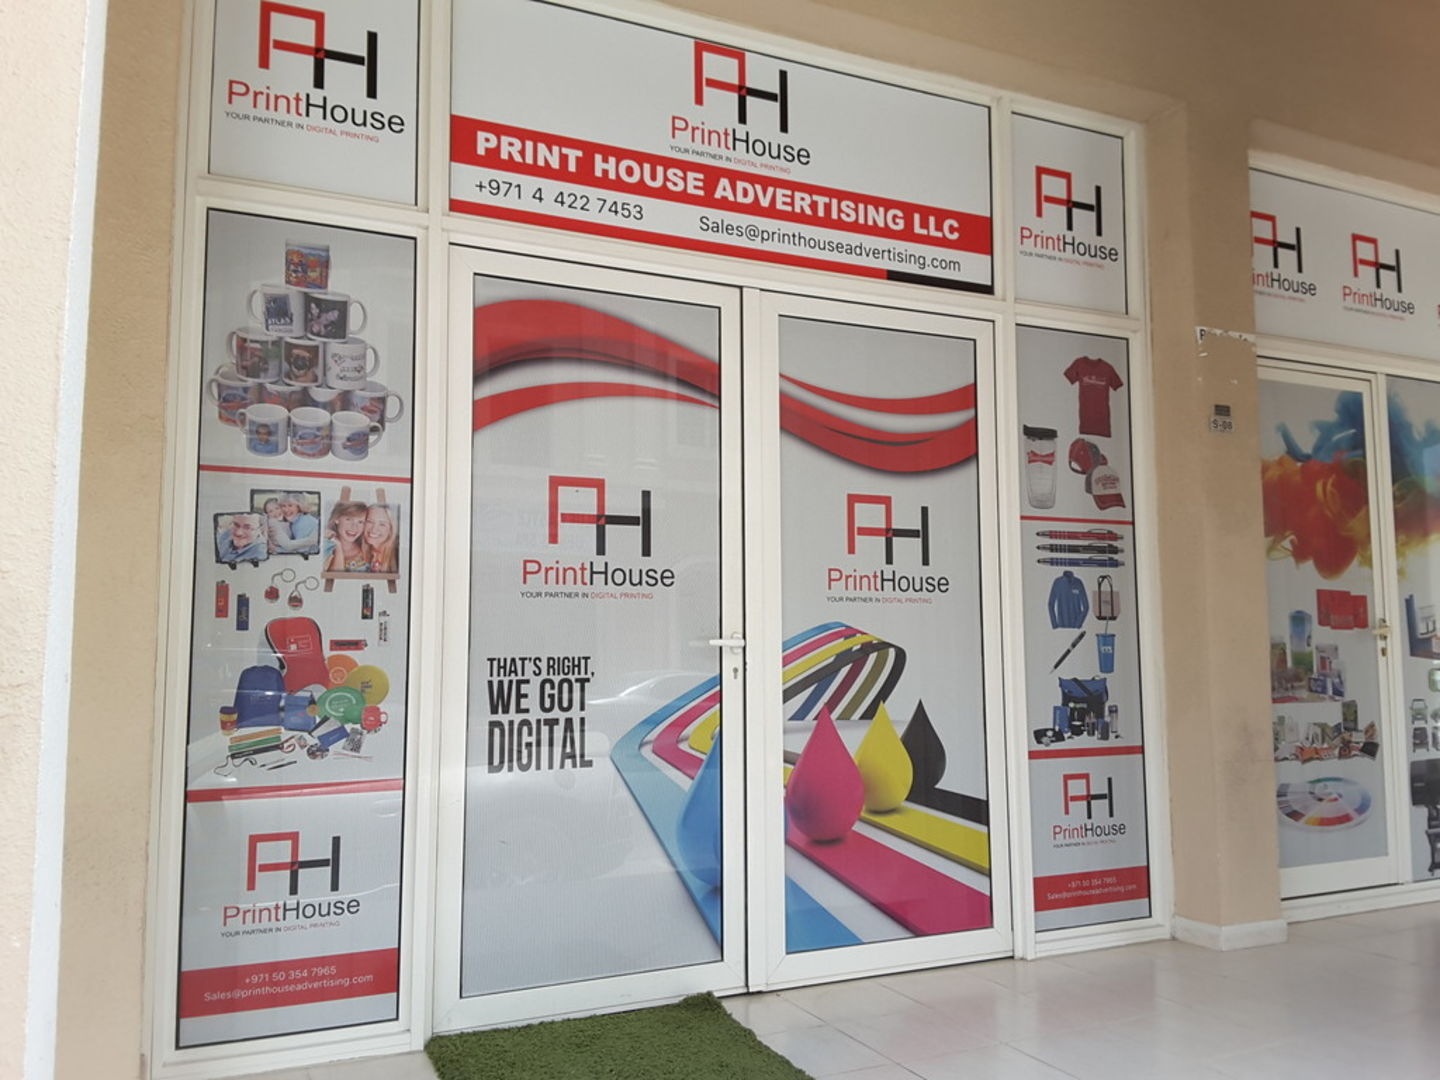 Walif-business-print-house-advertising